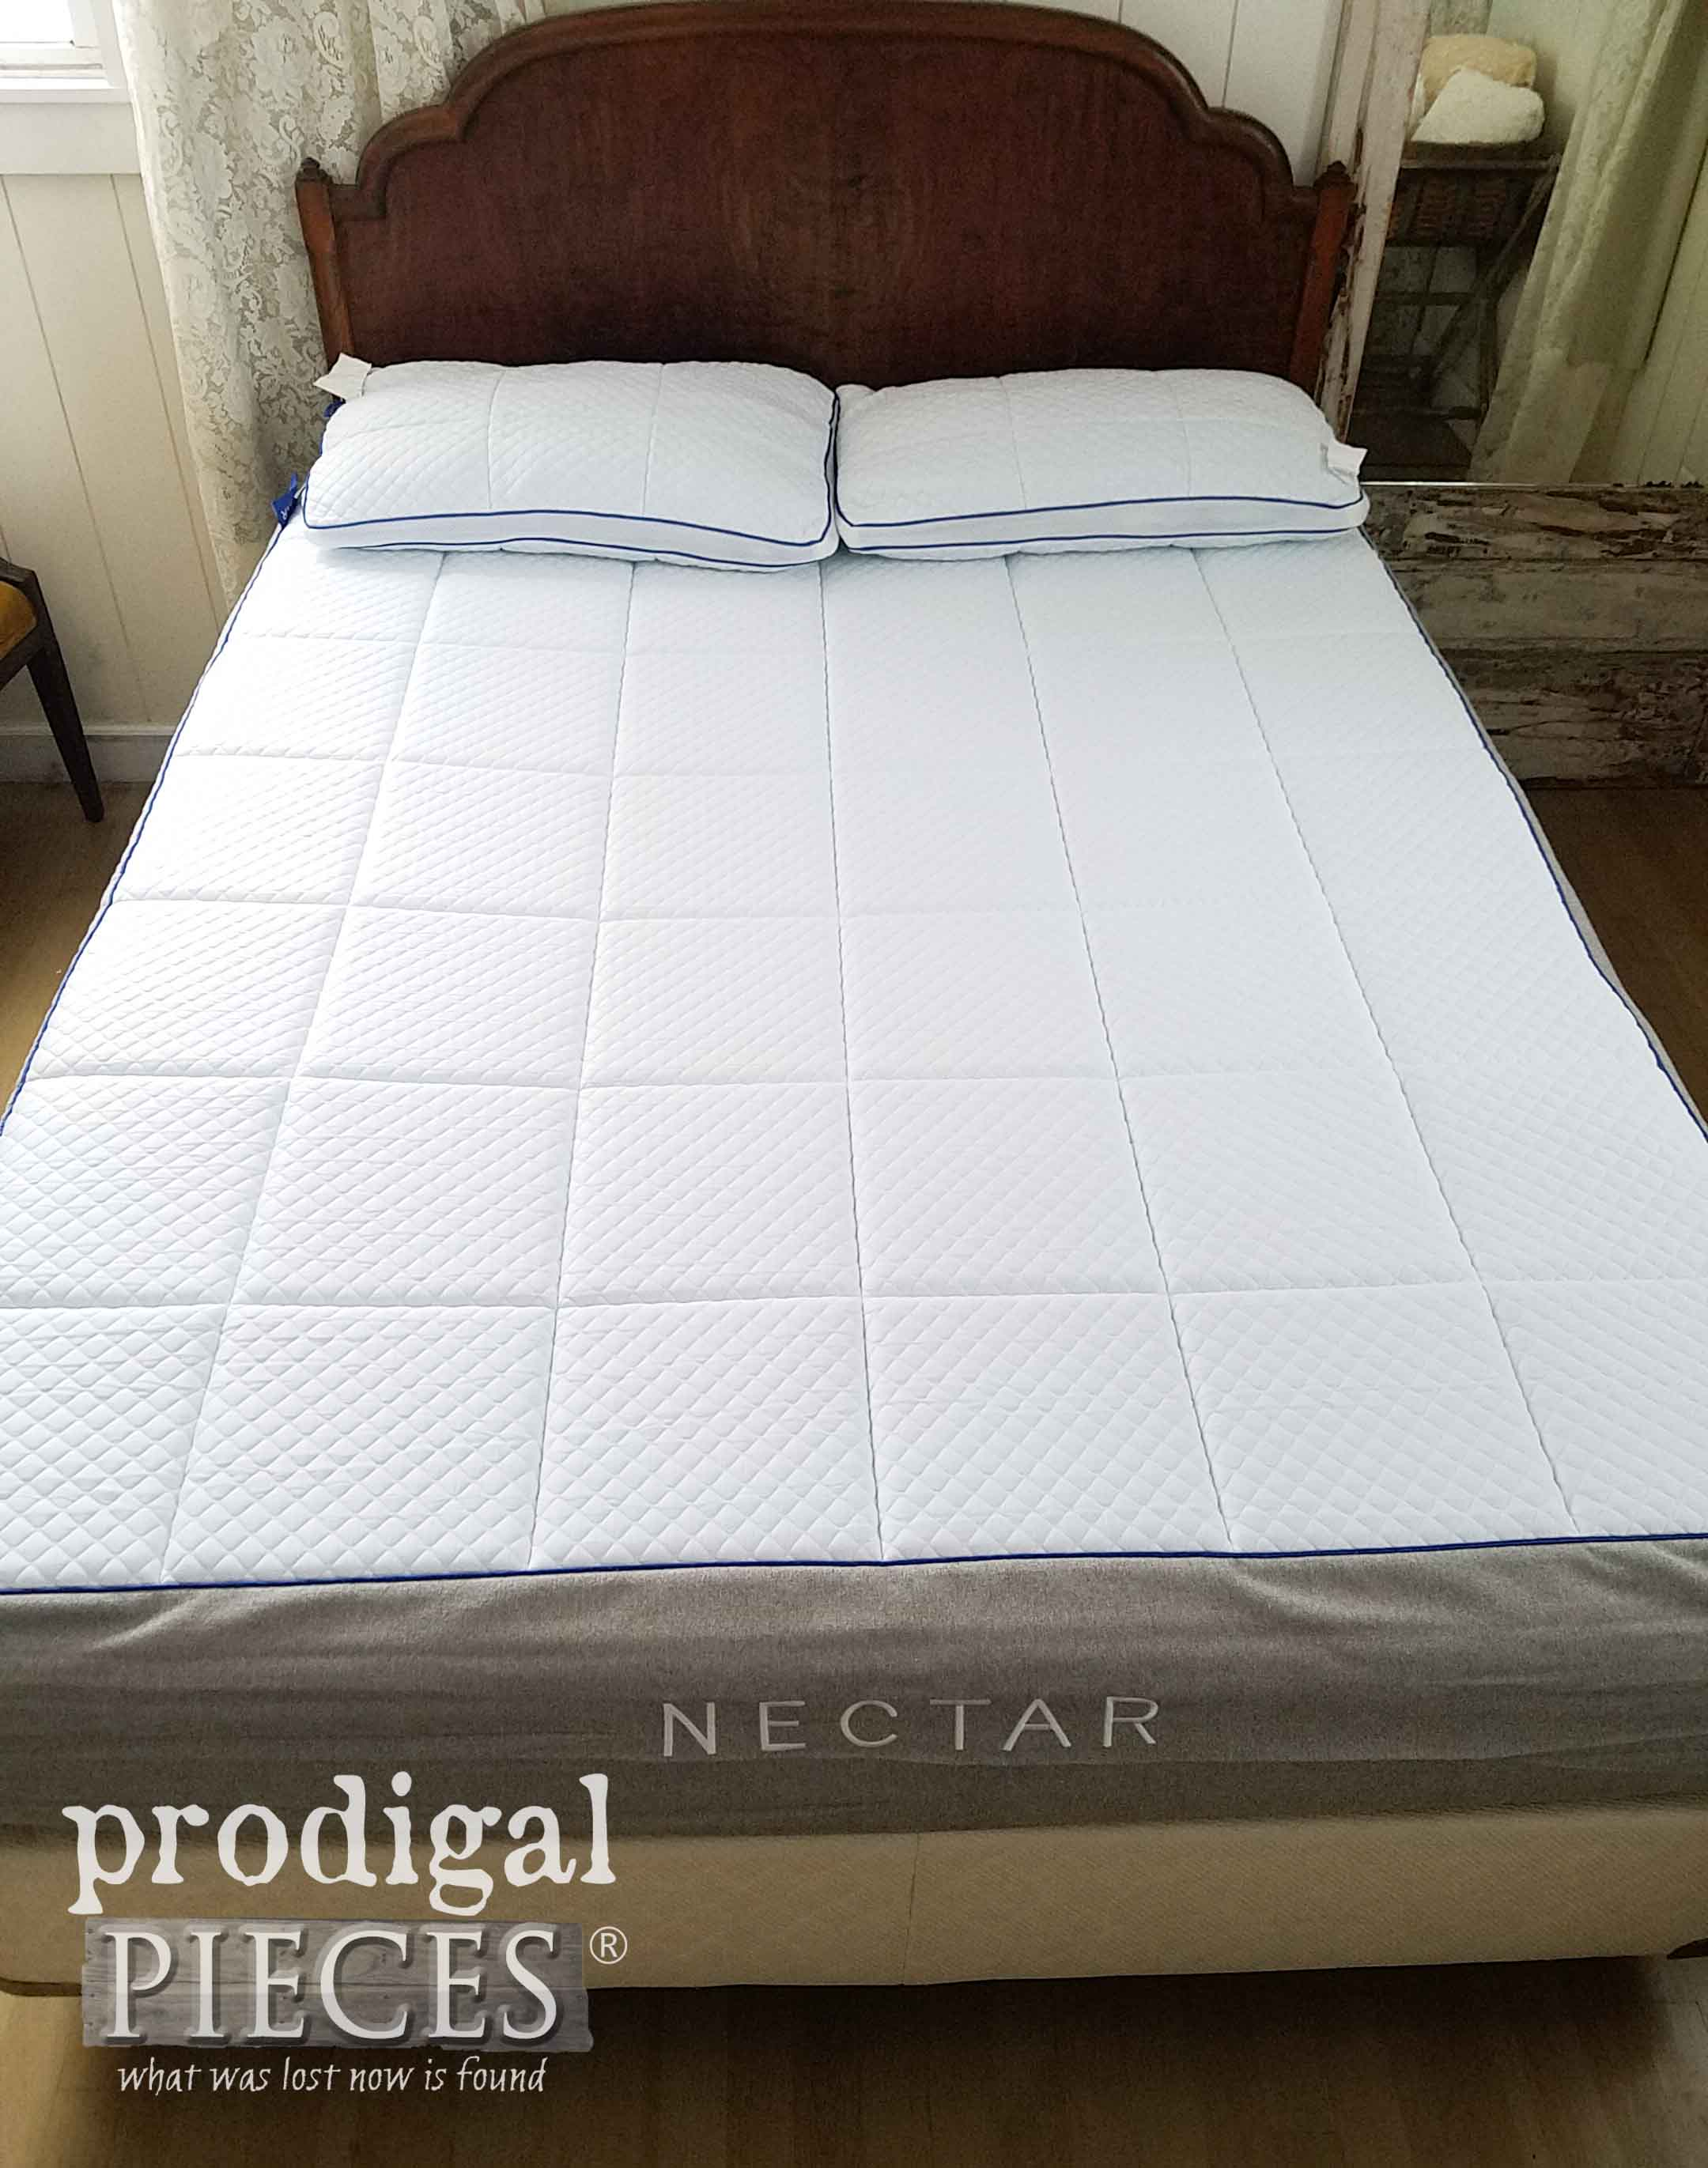 Nectar Mattress Review By My Family Of 8 Prodigal Pieces